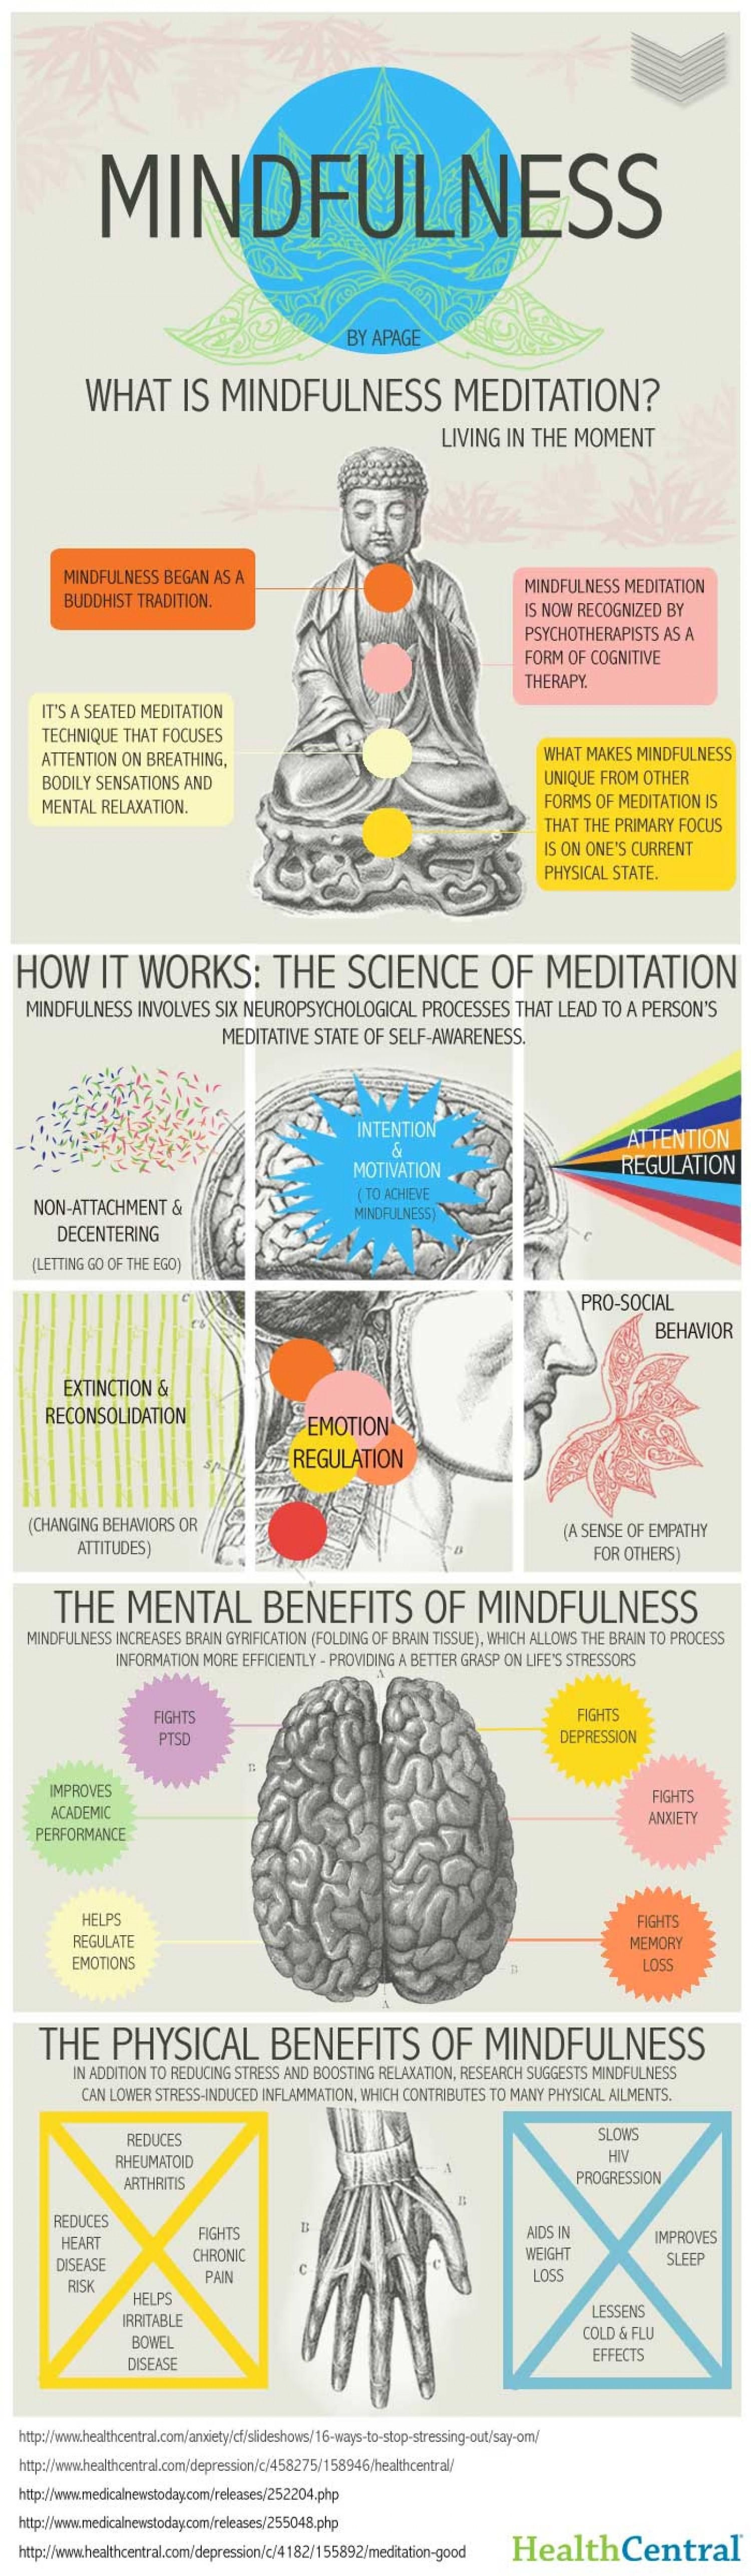 Mindfulness Infographic: Key Benefits This is such a great exercise... And actually, I don't think I would be where I'm at today if I had not become aware of mindfulness.